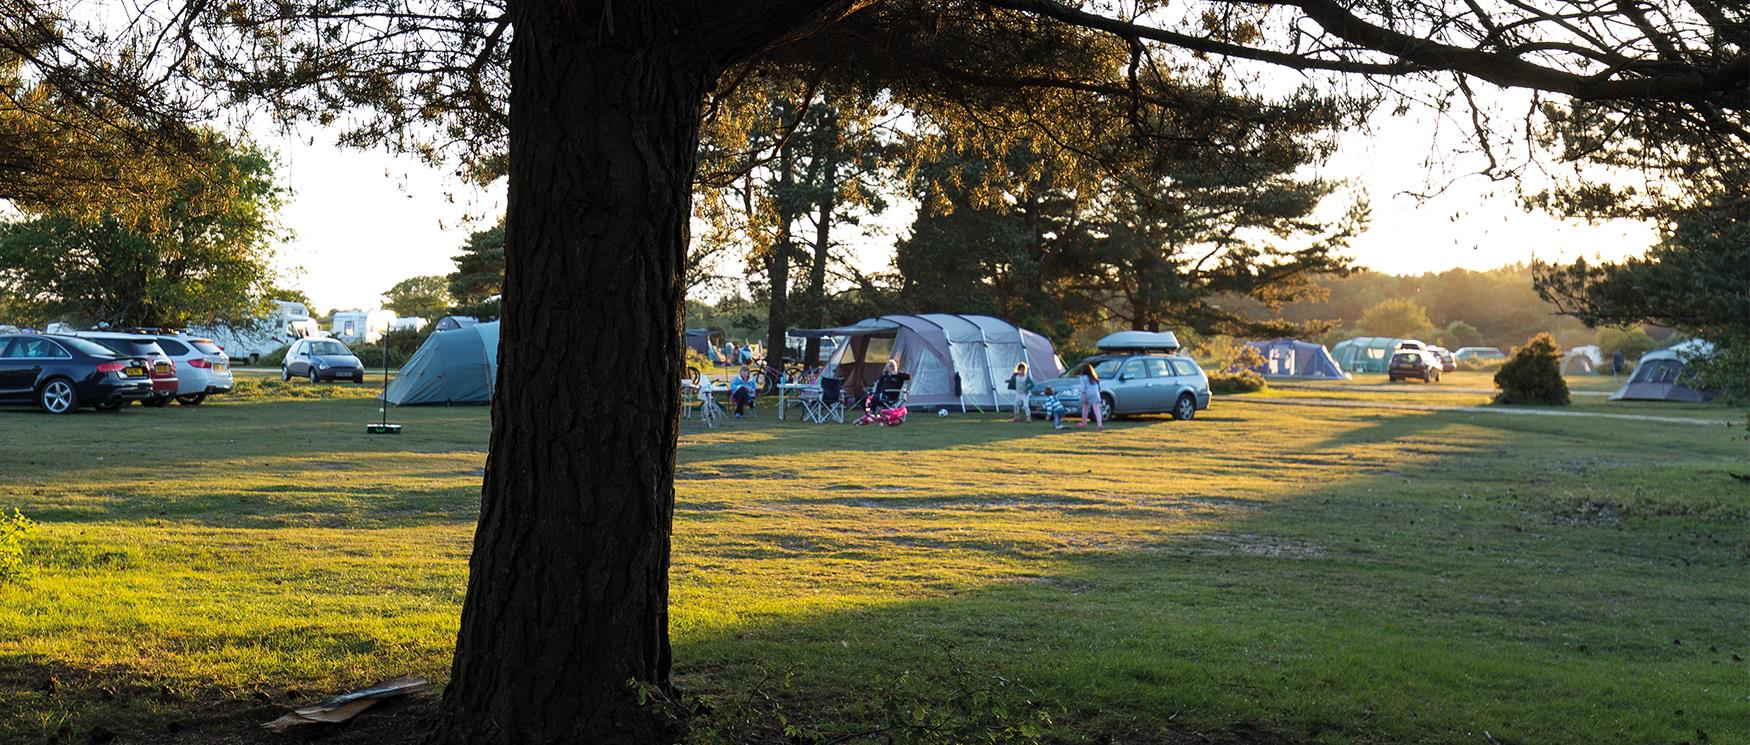 Campsite in the New Forest National Park